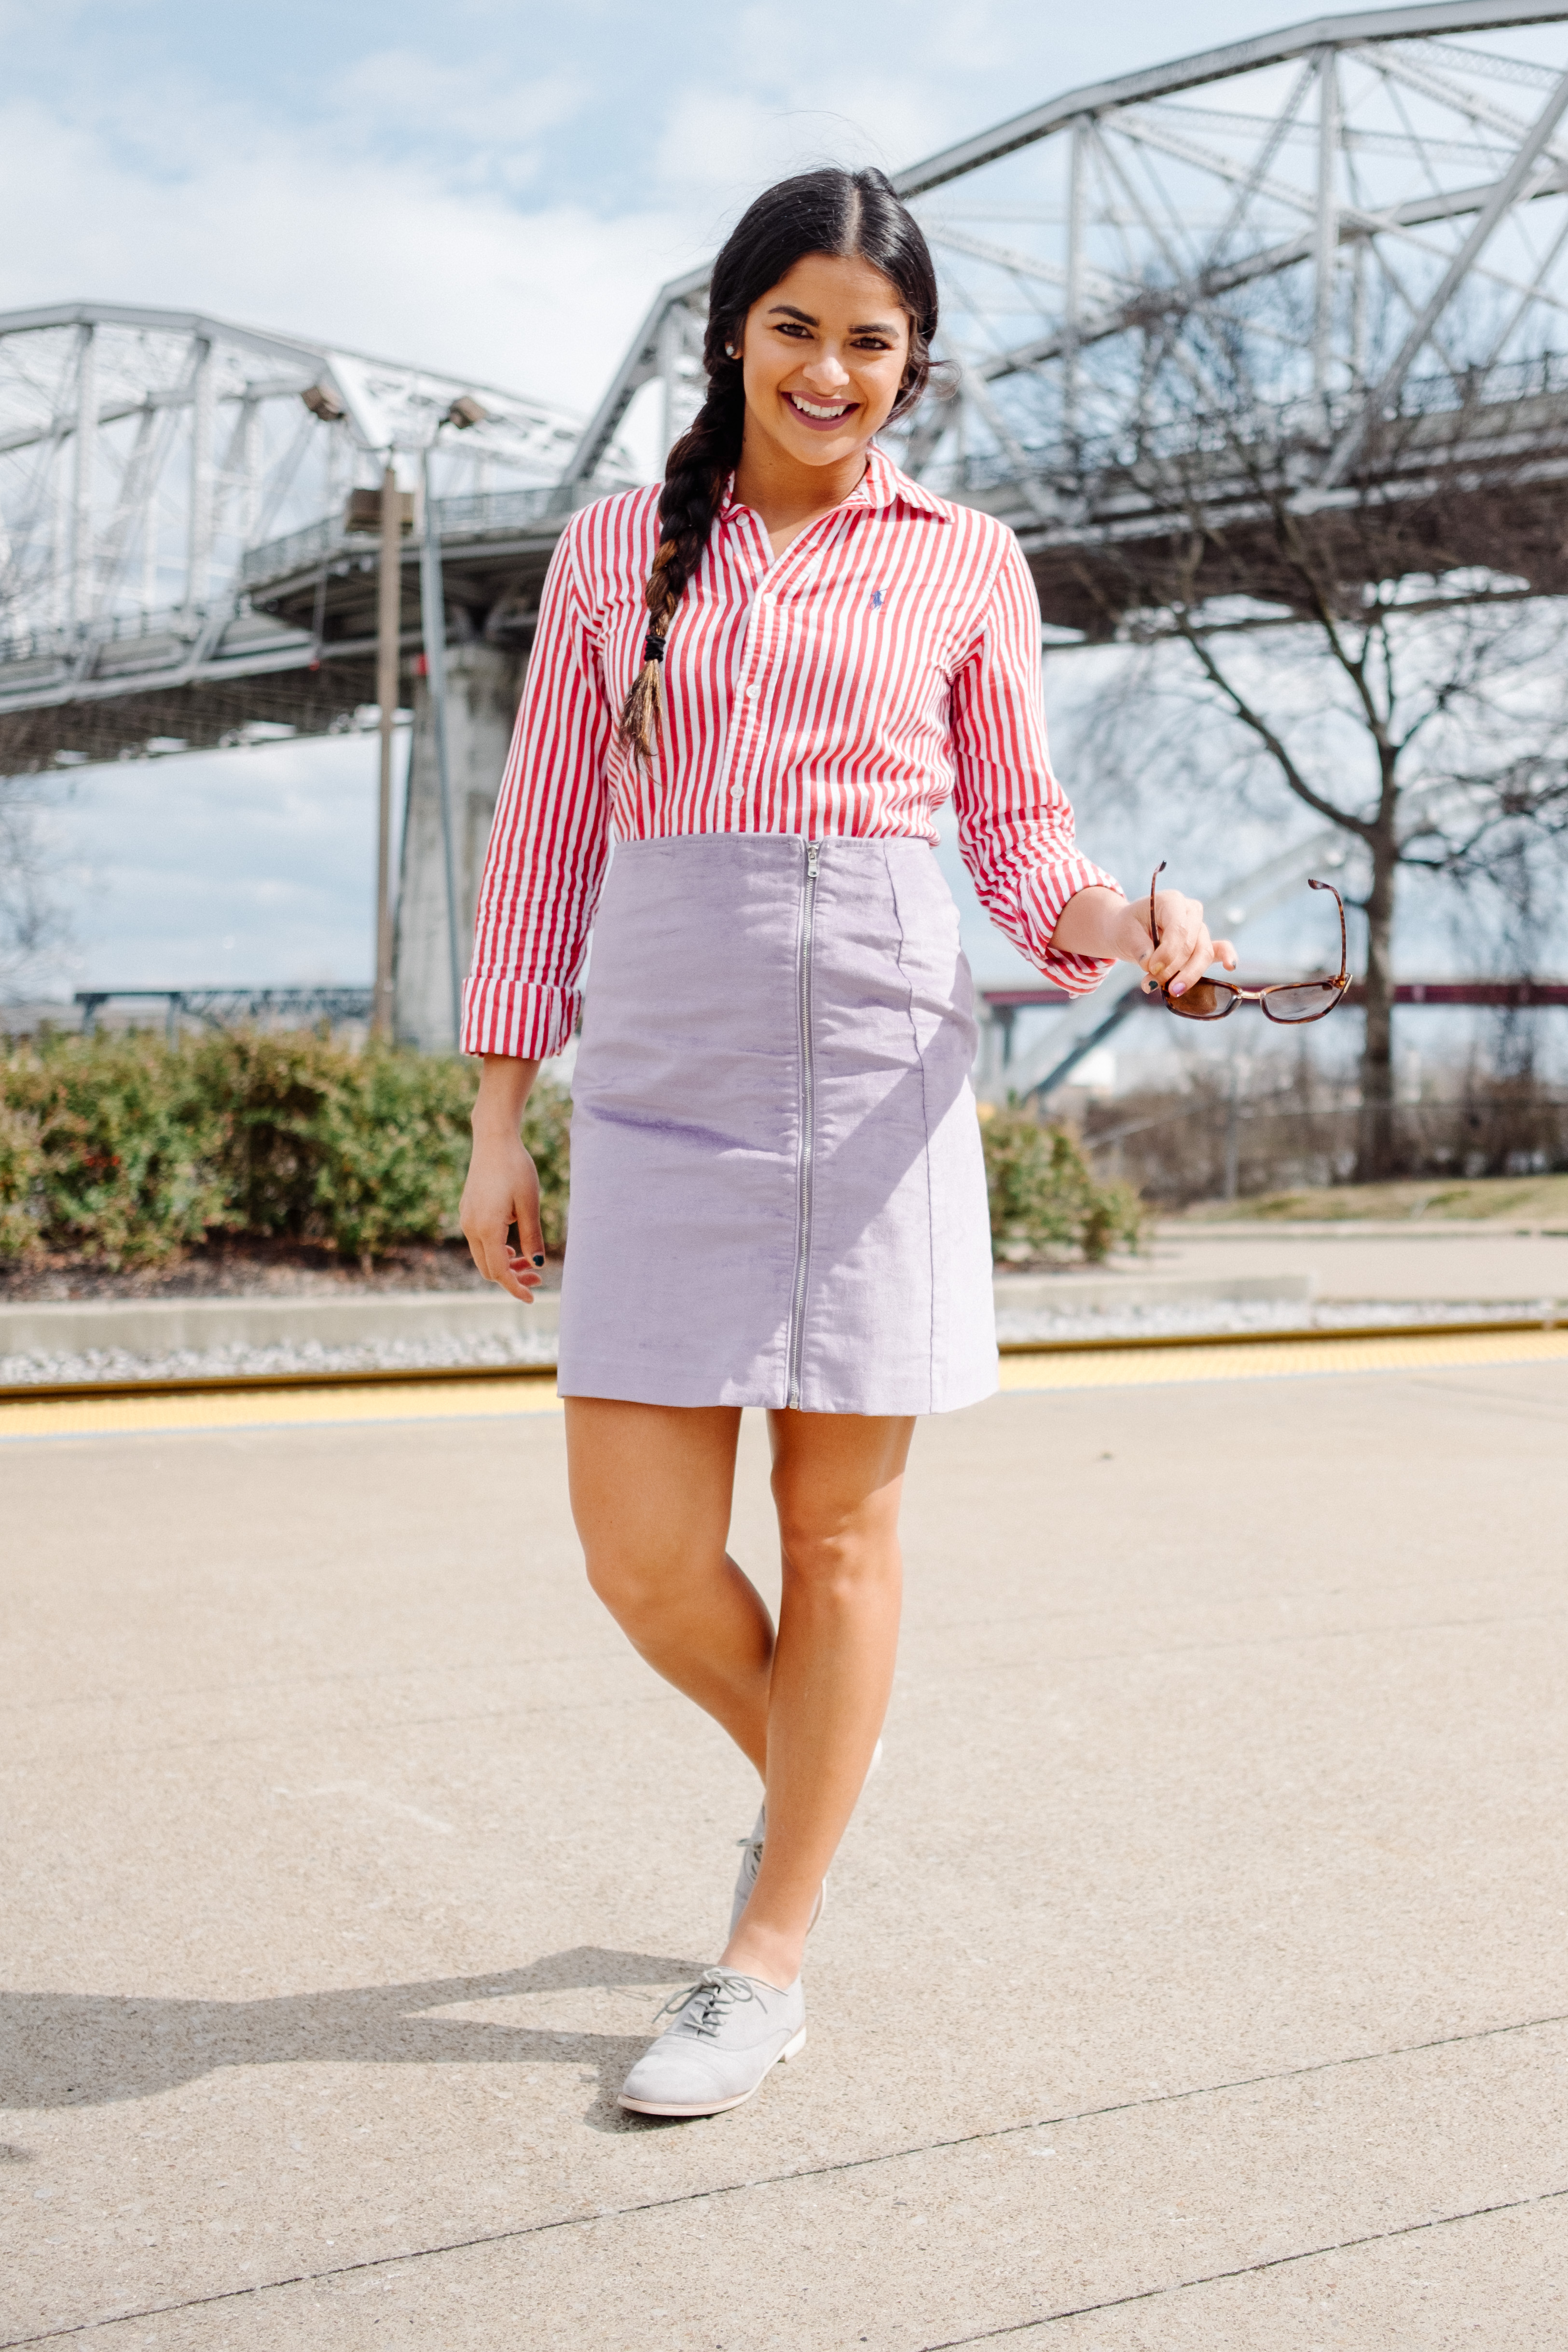 Priya the Blog, Nashville fashion blog, Nashville fashion blogger, Nashville style blogger, Spring outfit, LOFT purple velvet skirt, ColourPop Lippie Stix in Lumiere, Red Striped Button-up